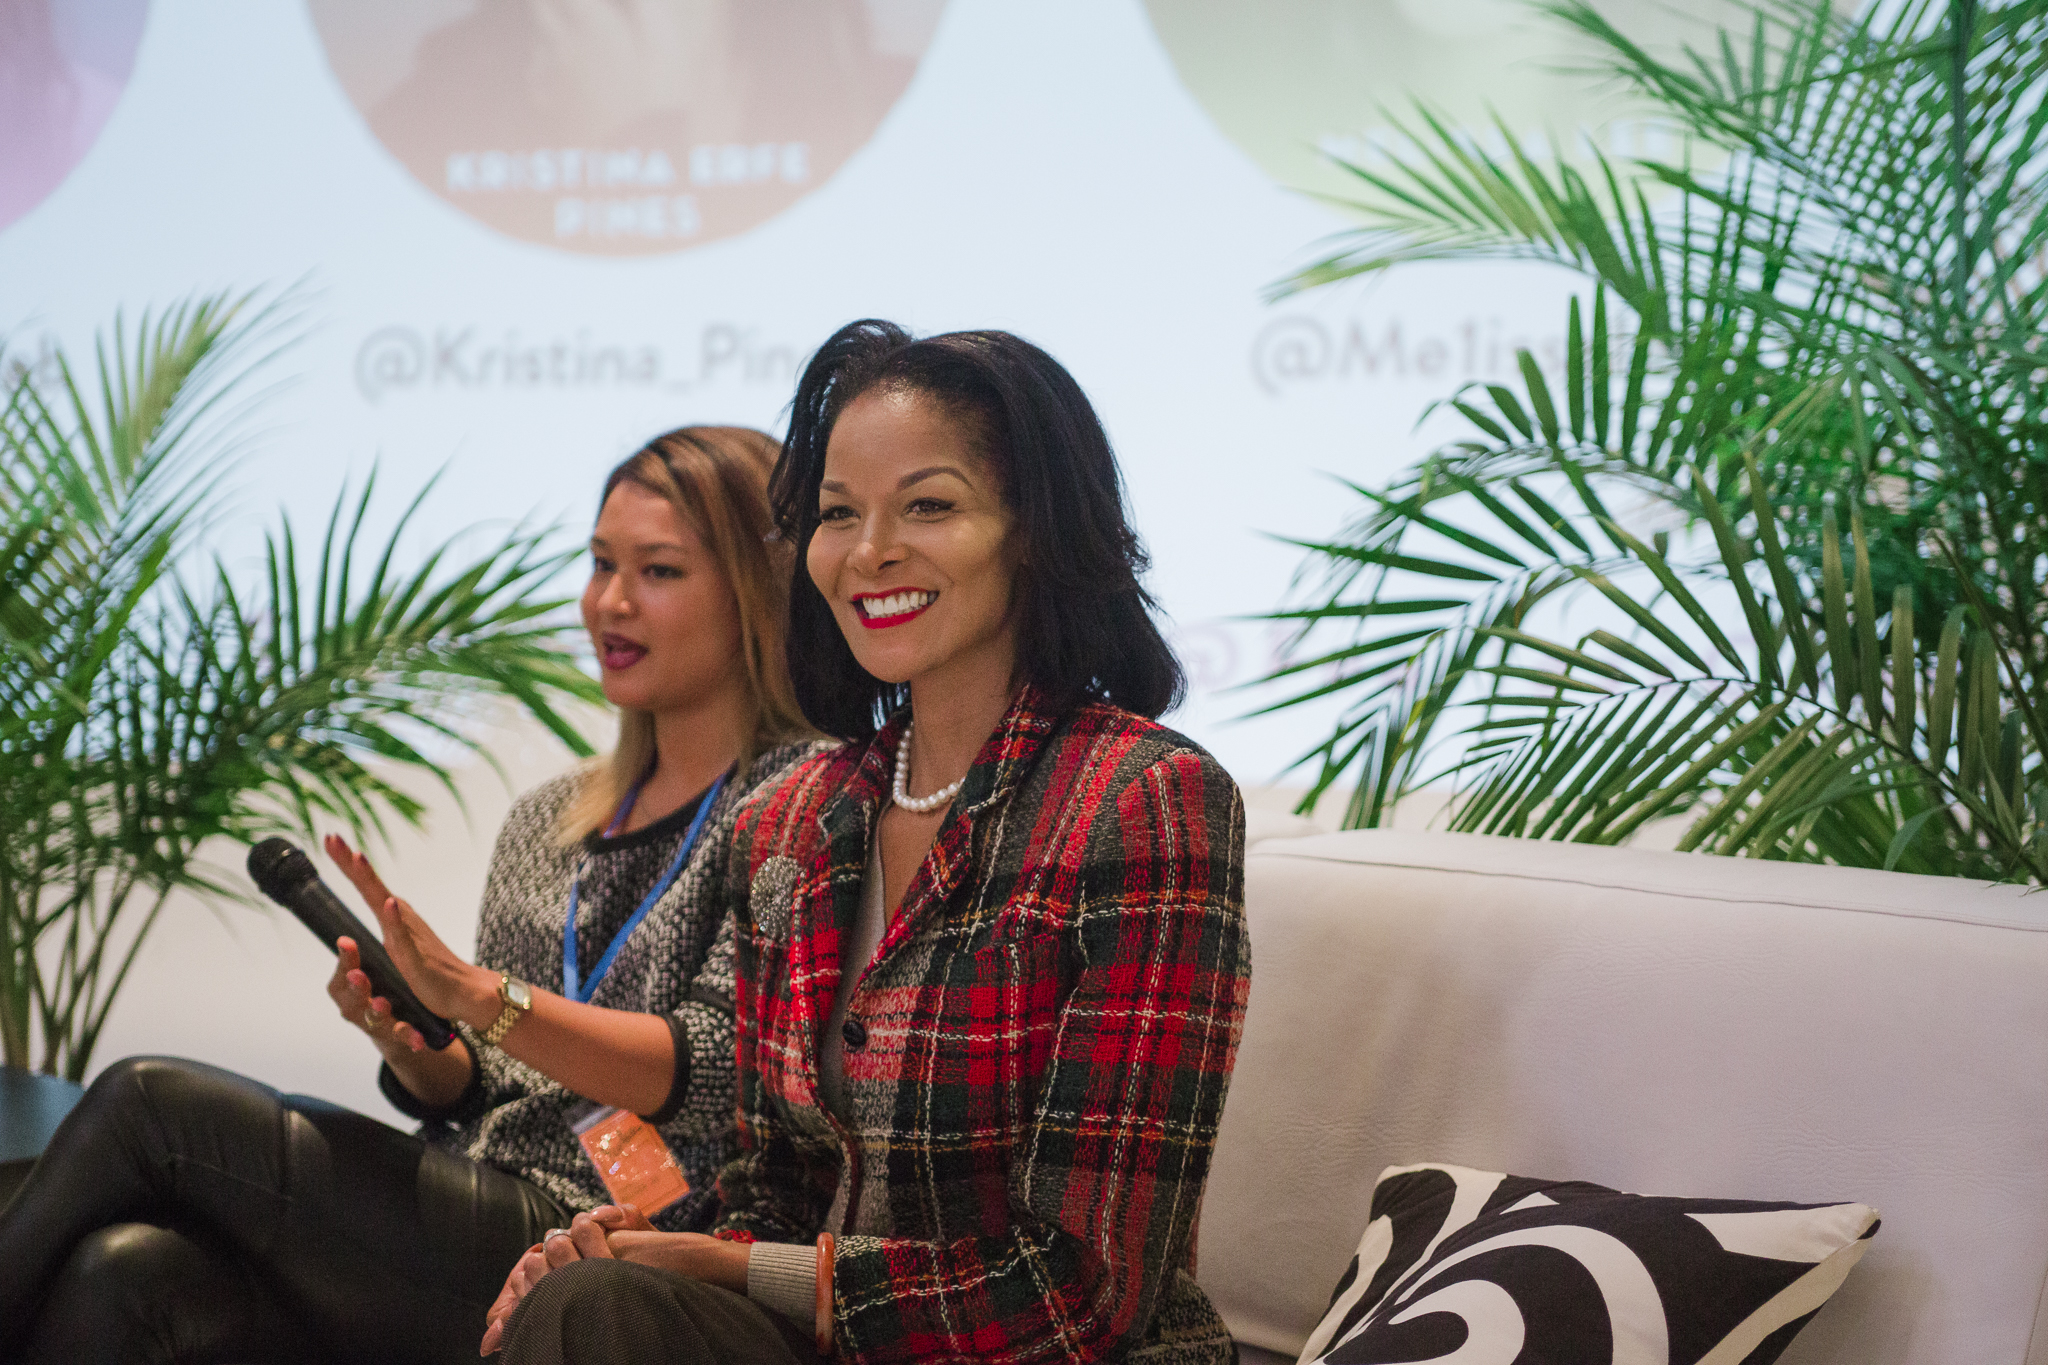 TheFearlessConference_Day2-98.jpg